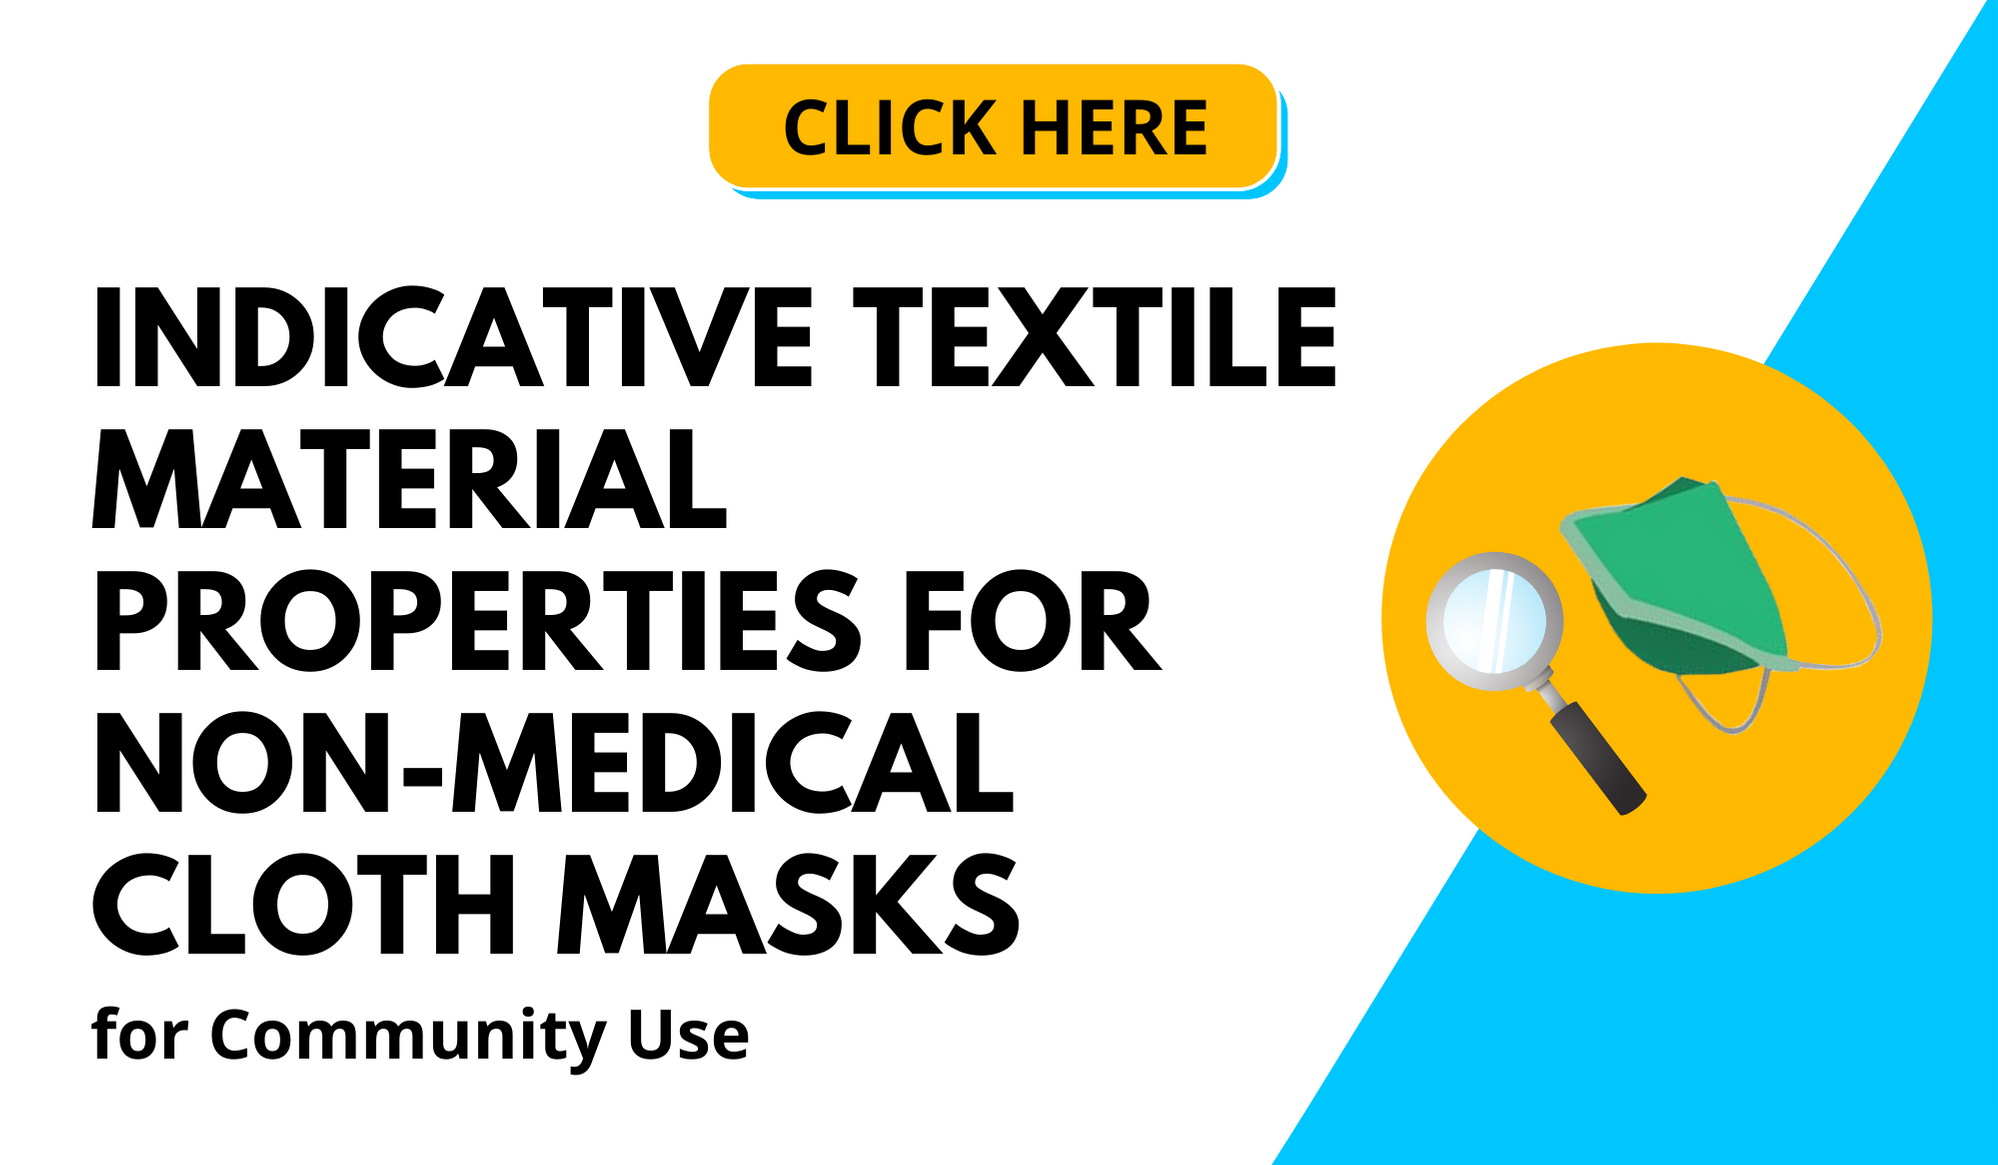 Indicative Textile Material Properties for Non-medical Cloth Masks for Community Use